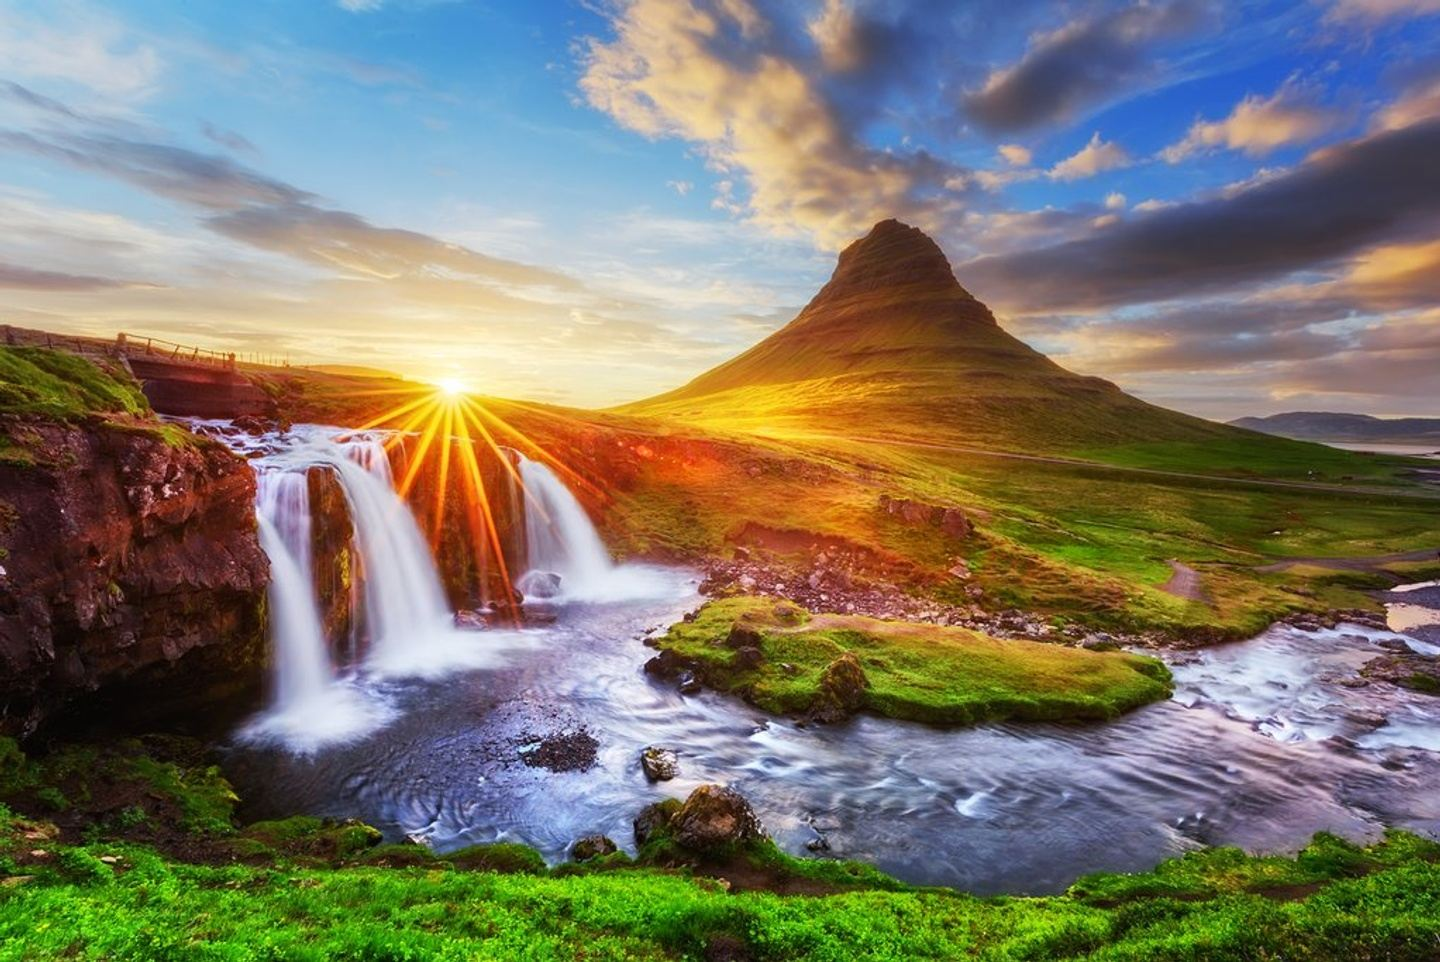 2022 Summer Solstice Tour of Iceland